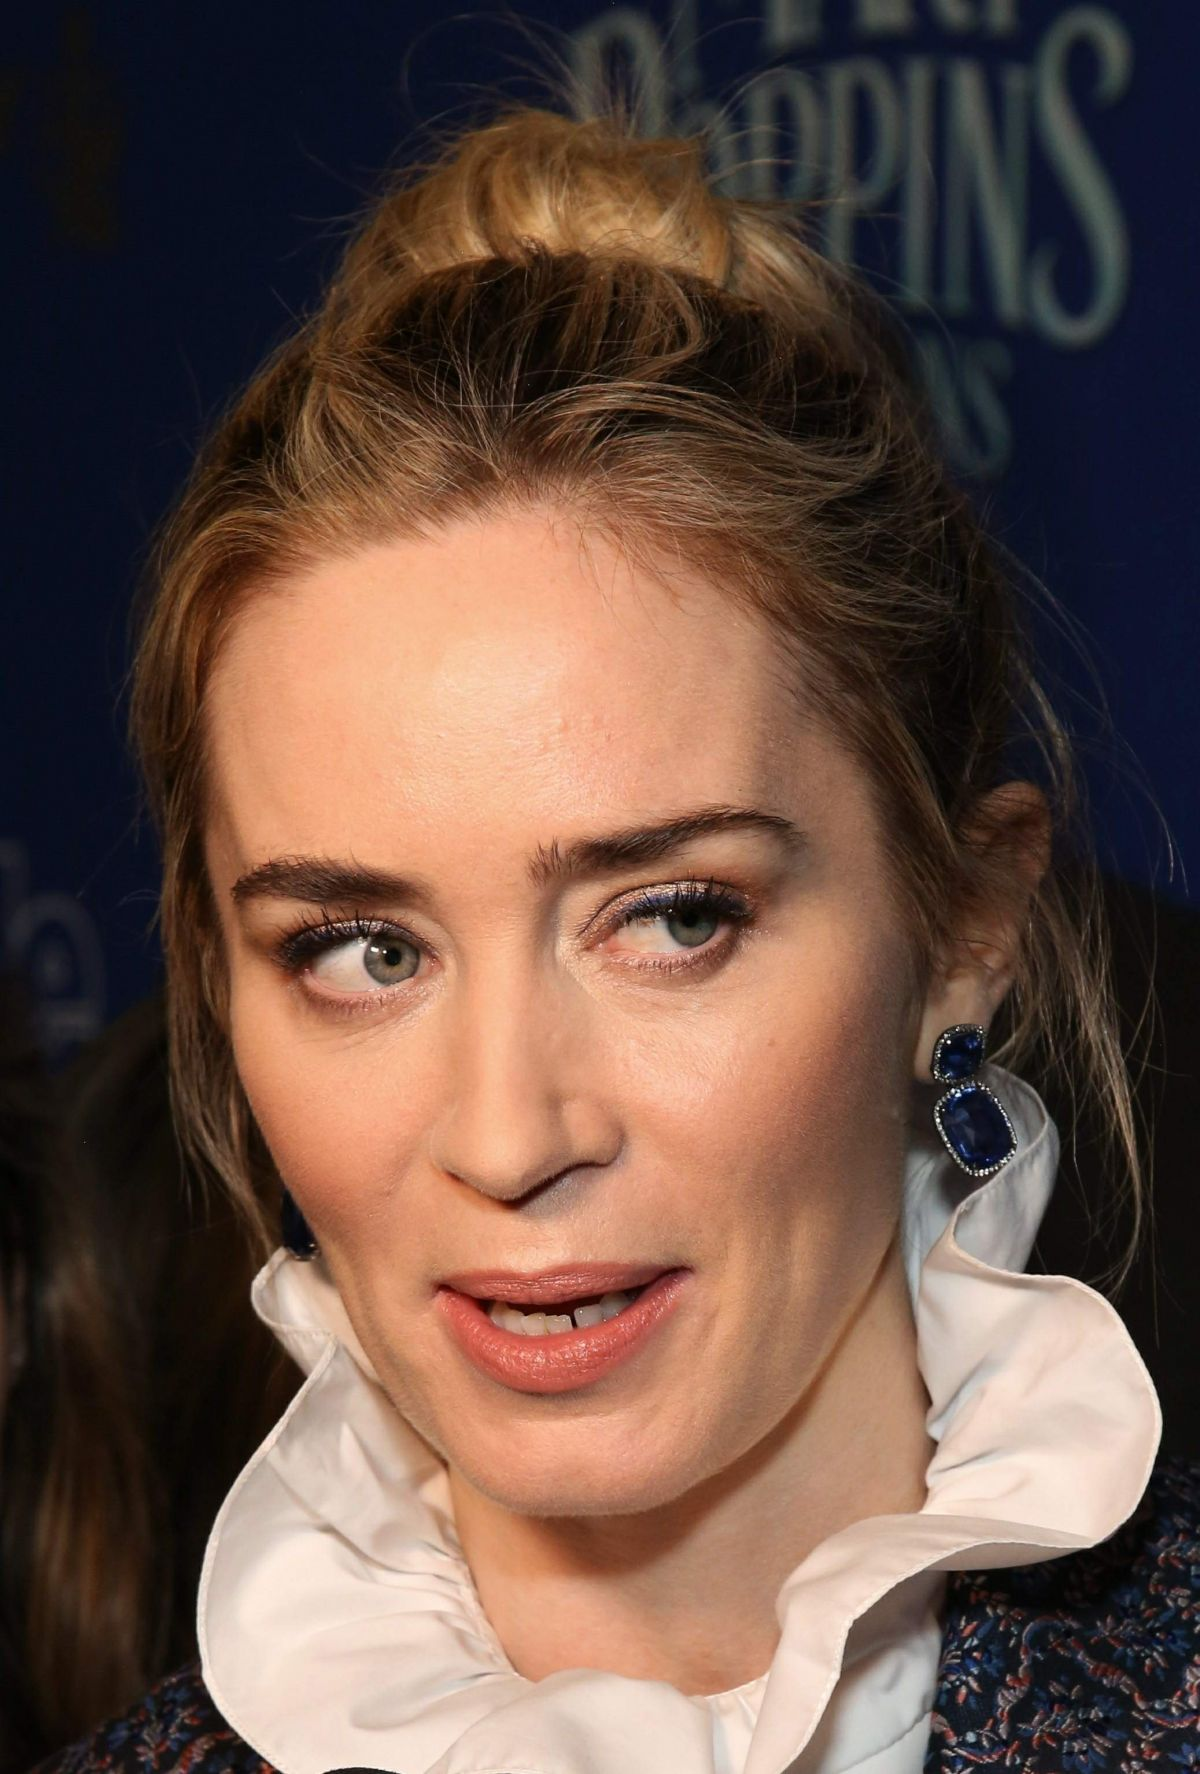 6 Things You Might Not Know about Emily Blunt